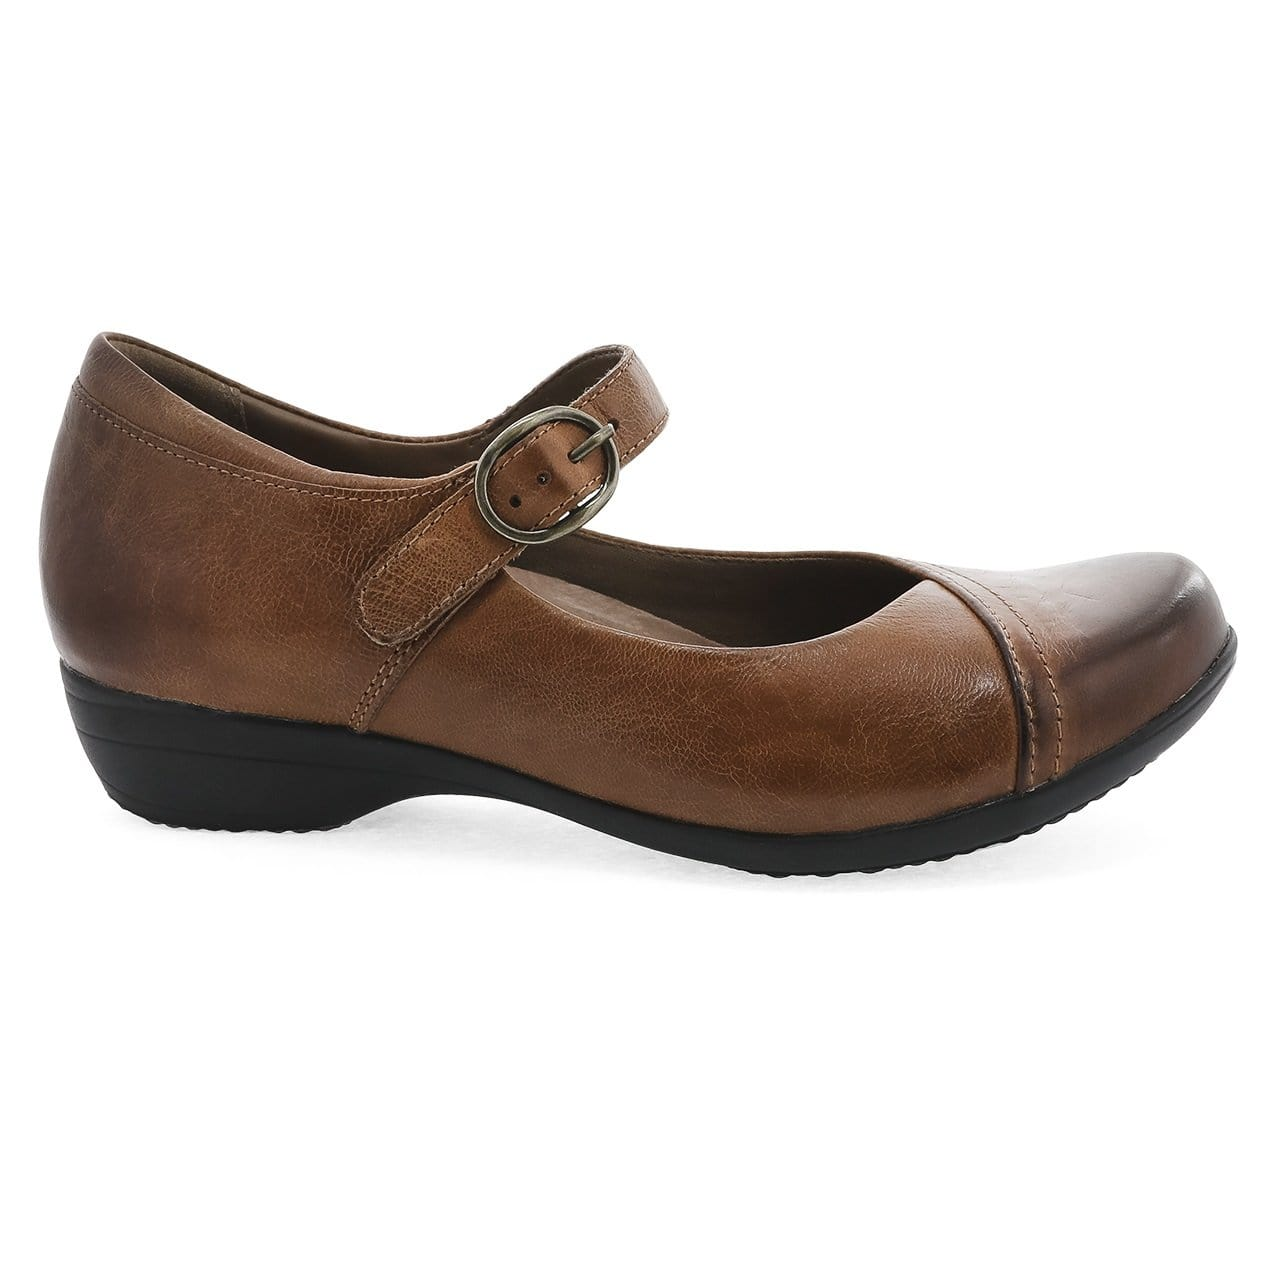 Dansko Fawna Women's Vintage Leather Buckle Low Heeled Mary Jane Shoe